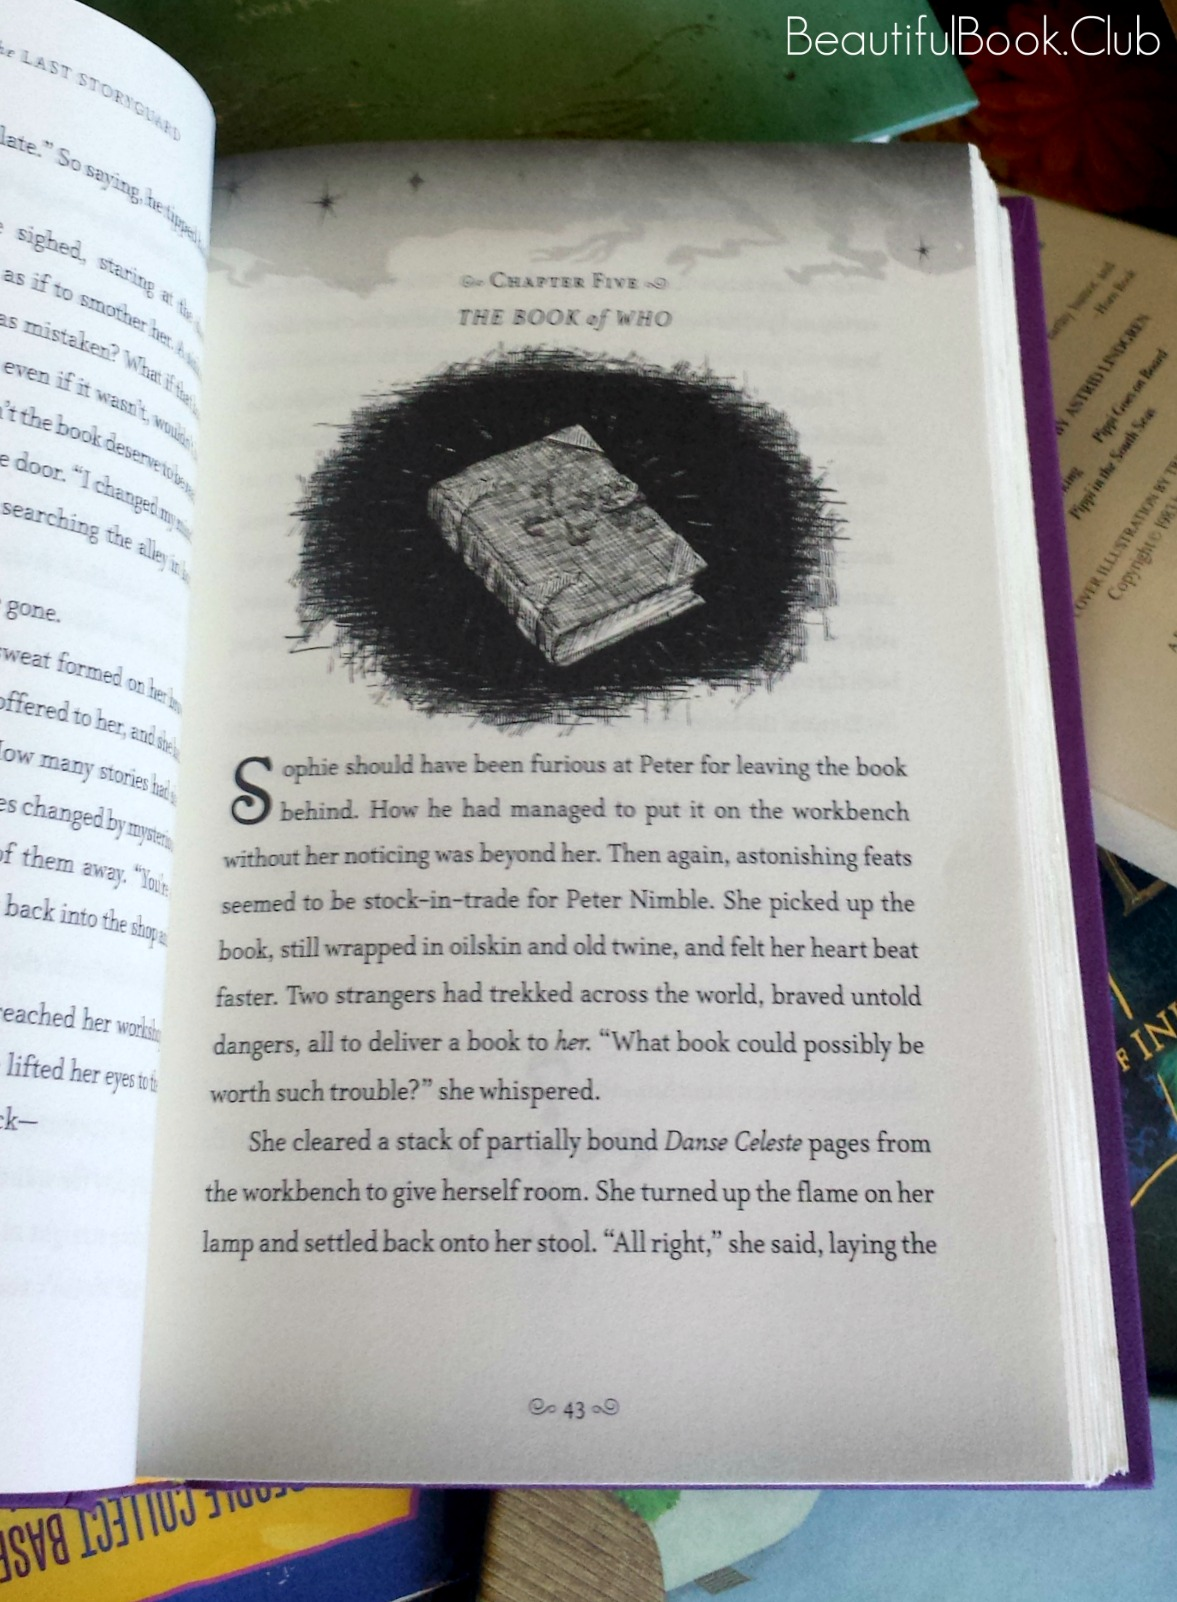 Sophie Quire and the Last Storyguard by Jonathan Auxier chapter five The Book of Who